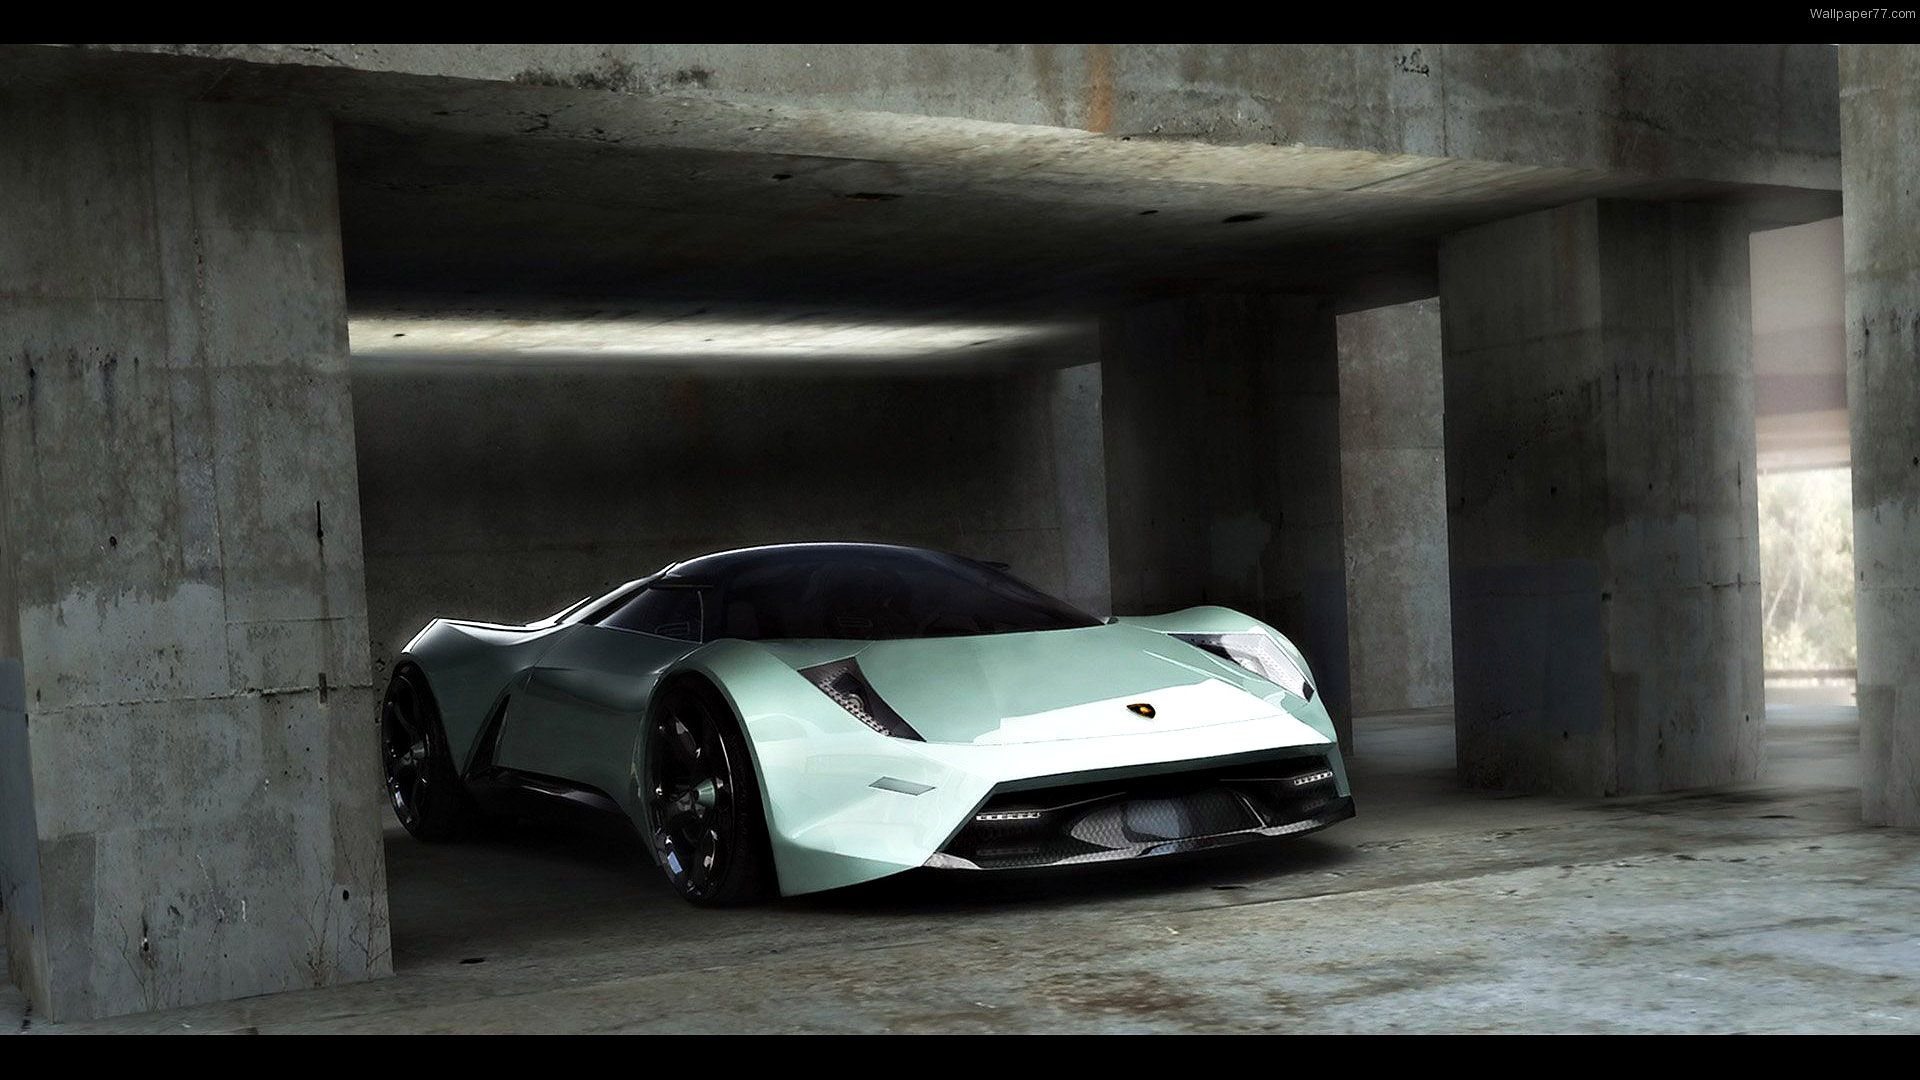 Concept Insecta In Garage Wallpaper 1920x1080